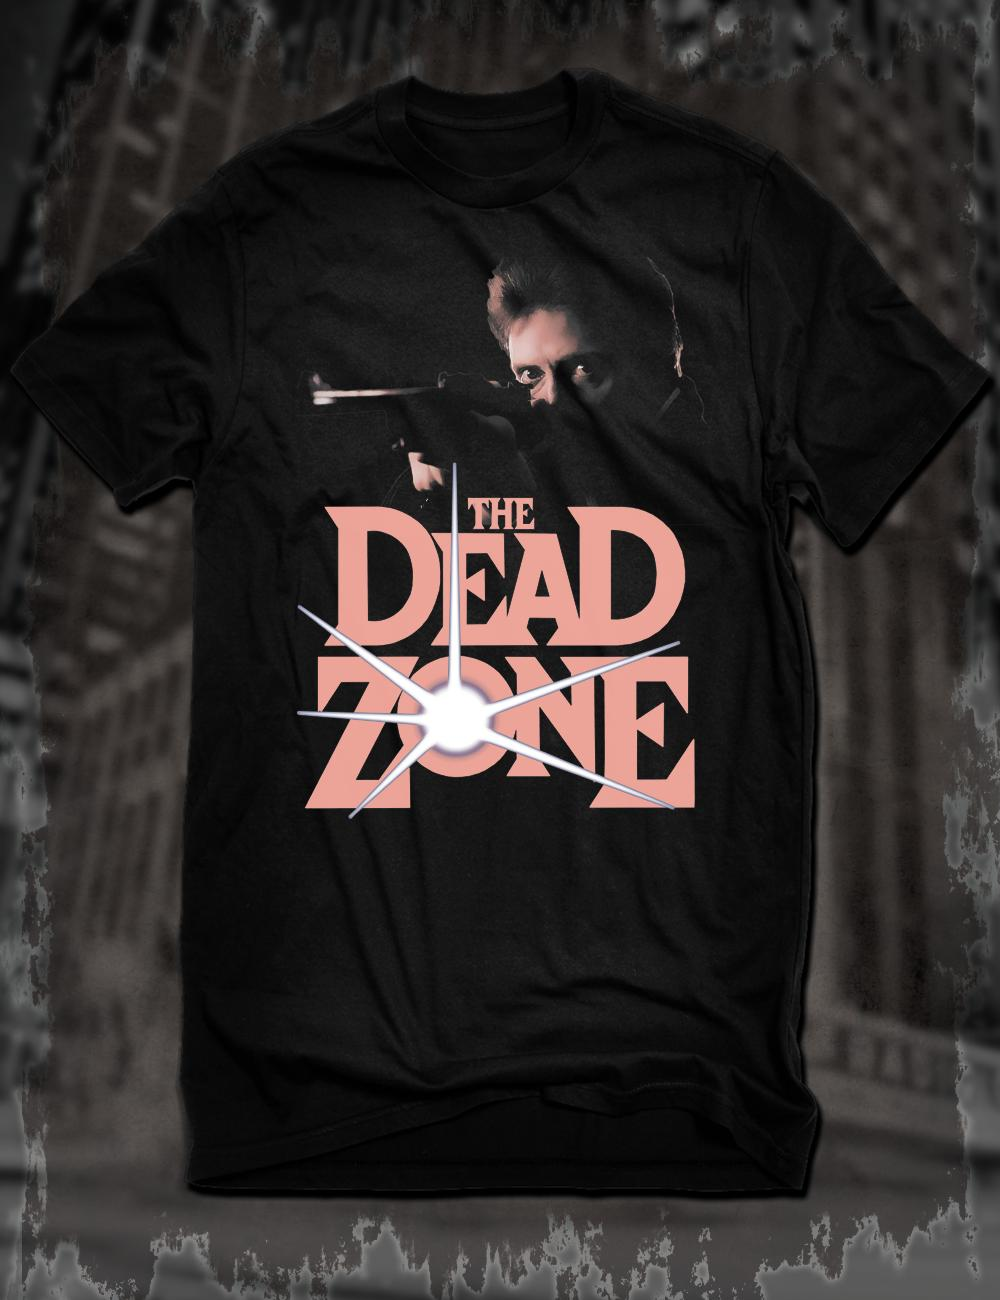 New Black The Dead Zone Film T-Shirt Christopher Walken Stephen King  Cronenberg Funny free shipping Unisex tee